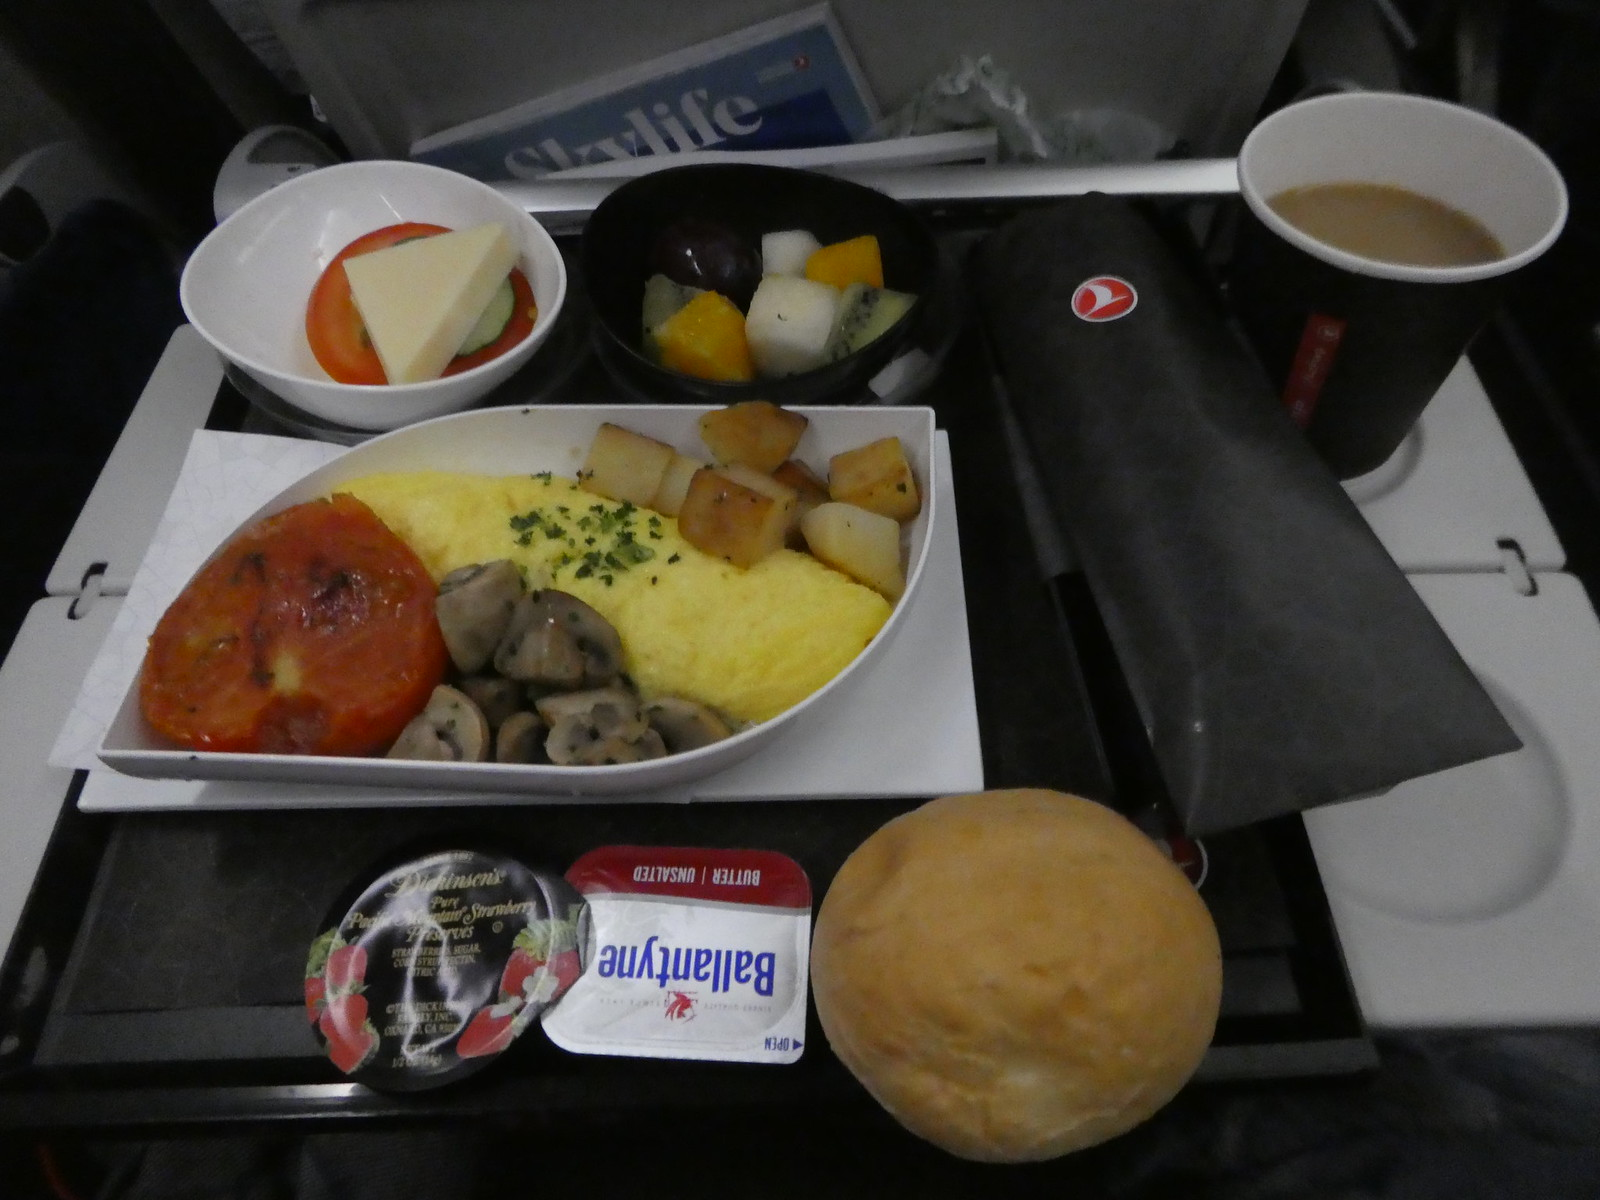 Breakfast on board our Turkish Airlines flight from Seoul to Istanbul